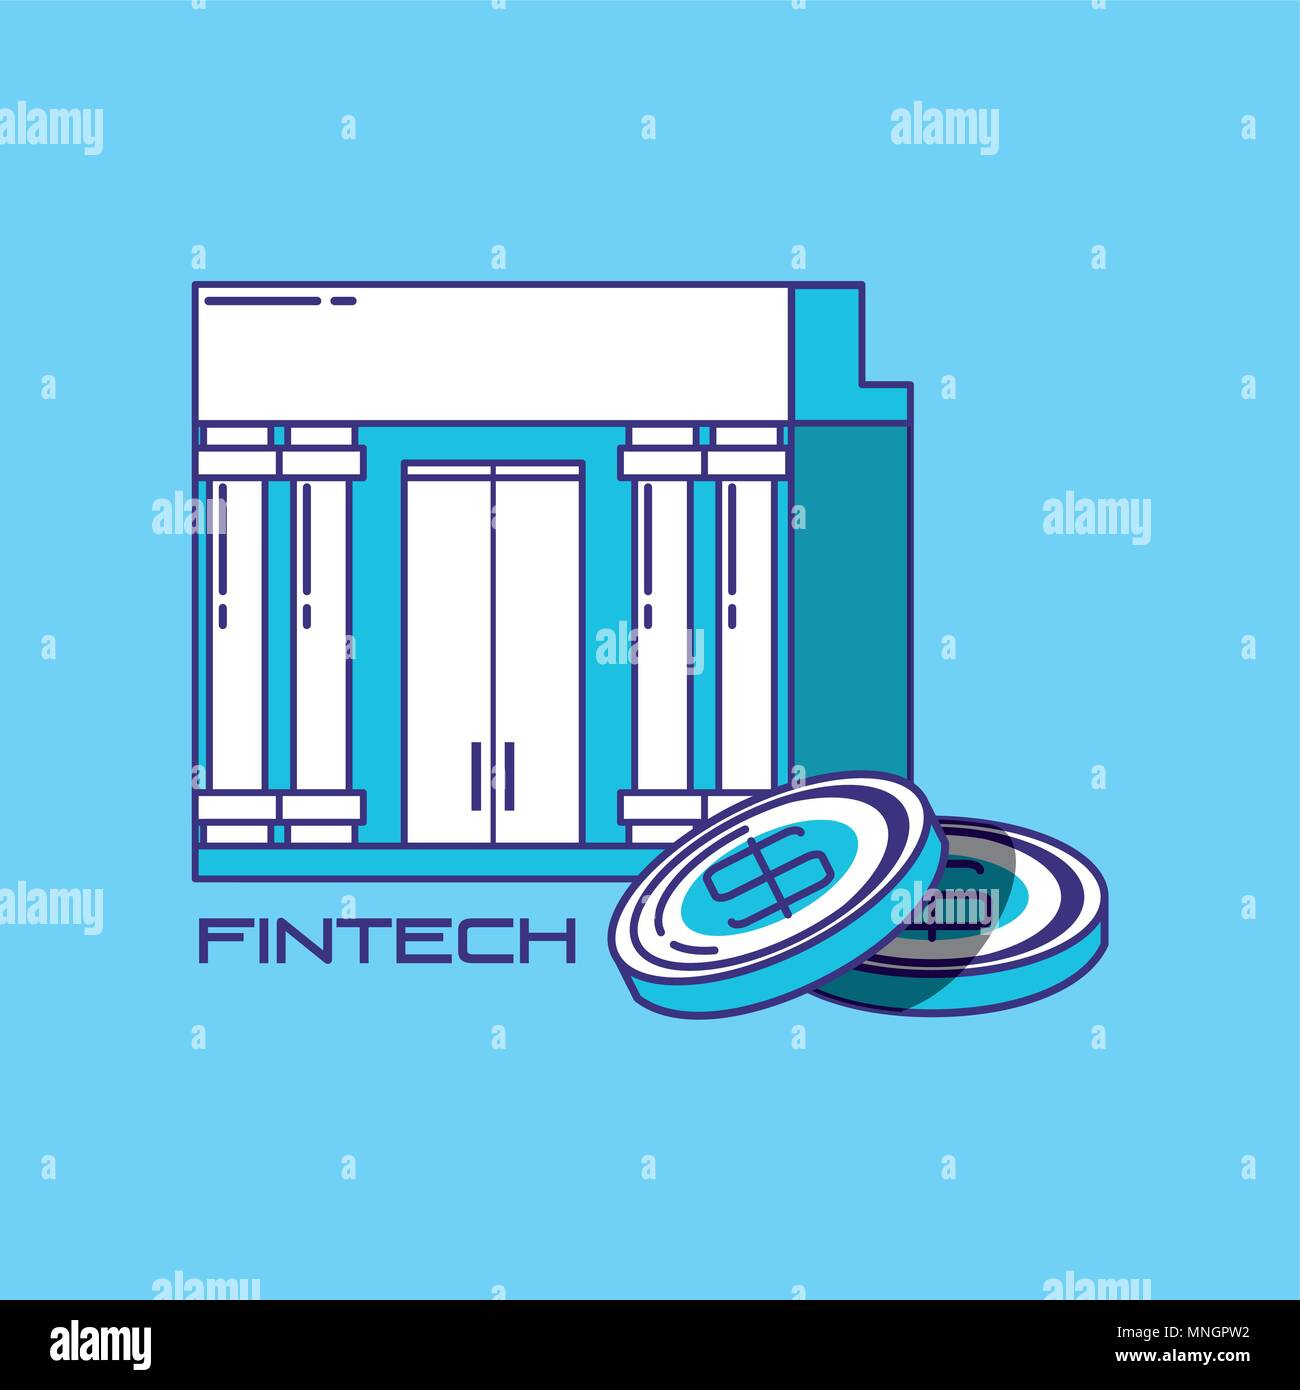 financial technology concept with bank building and coins over blue background, vector illustration - Stock Image